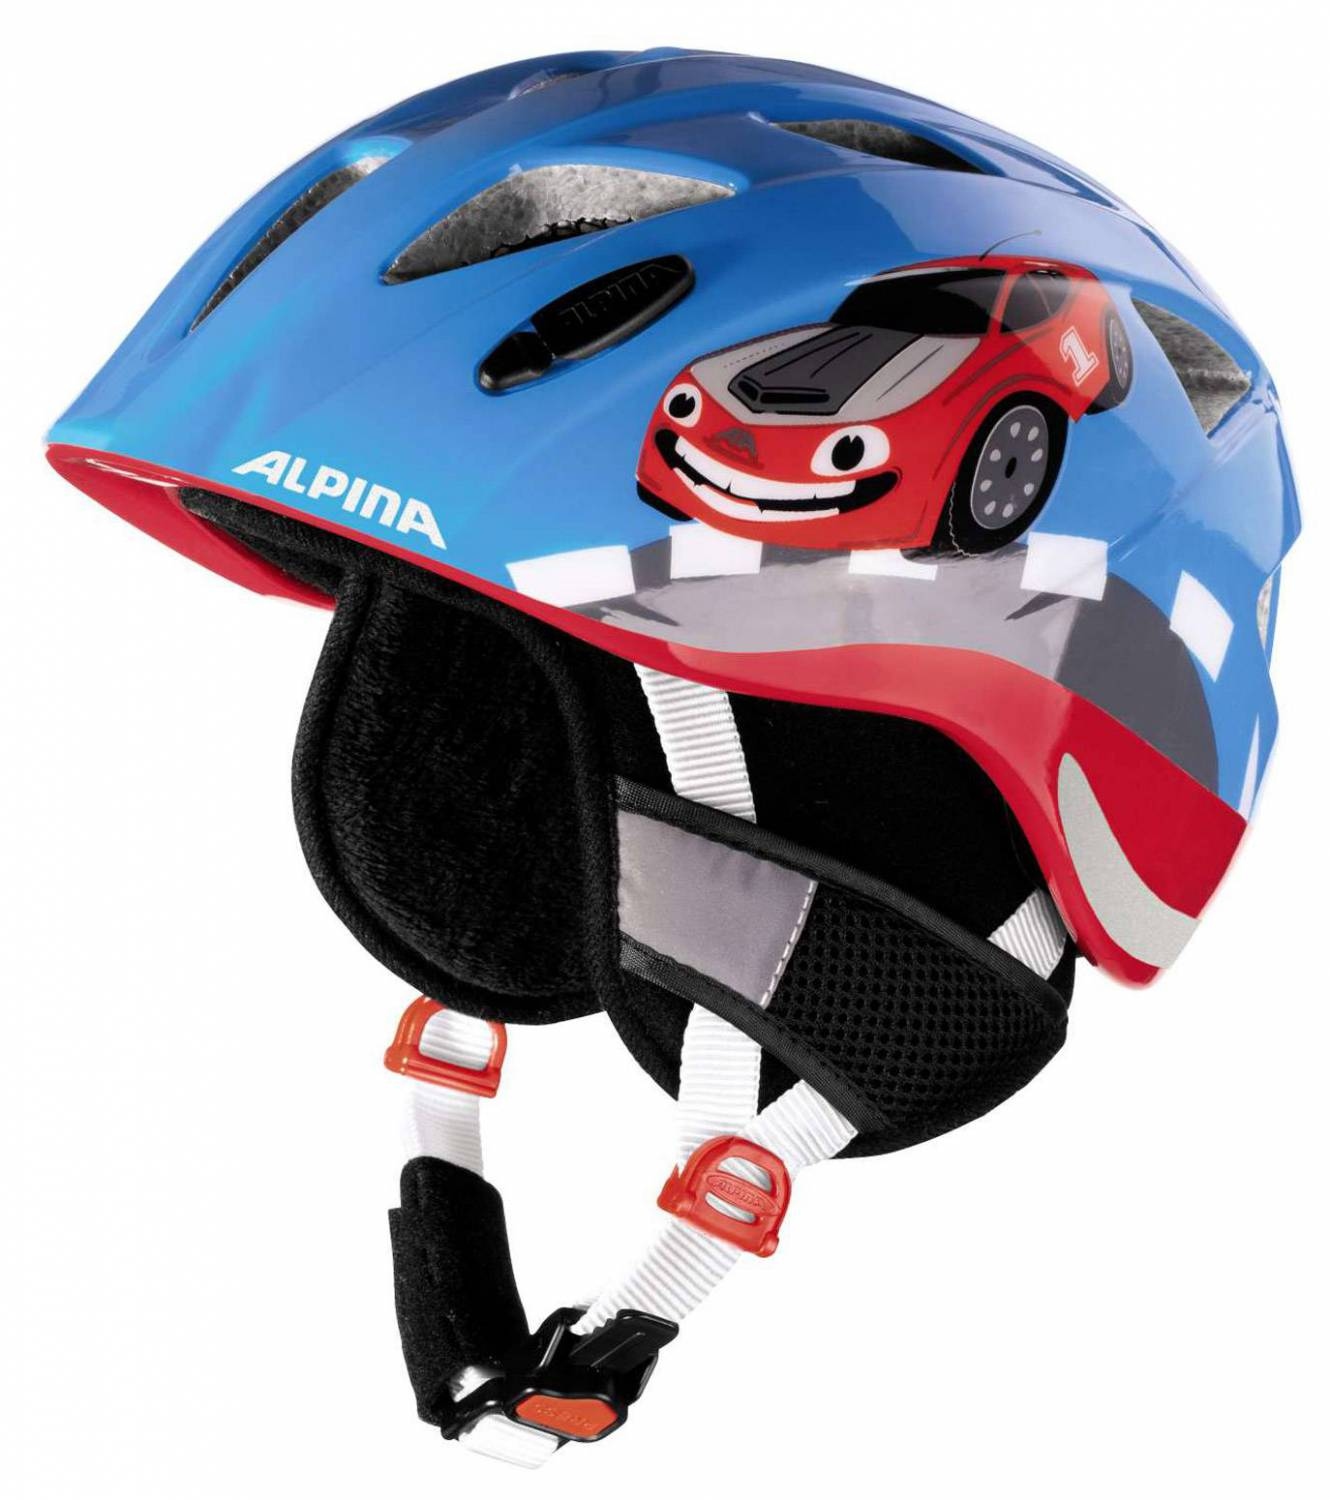 Alpina Ximo Flash Winter Kinderfahrradhelm (Größe 49 54 cm, 80 red care)